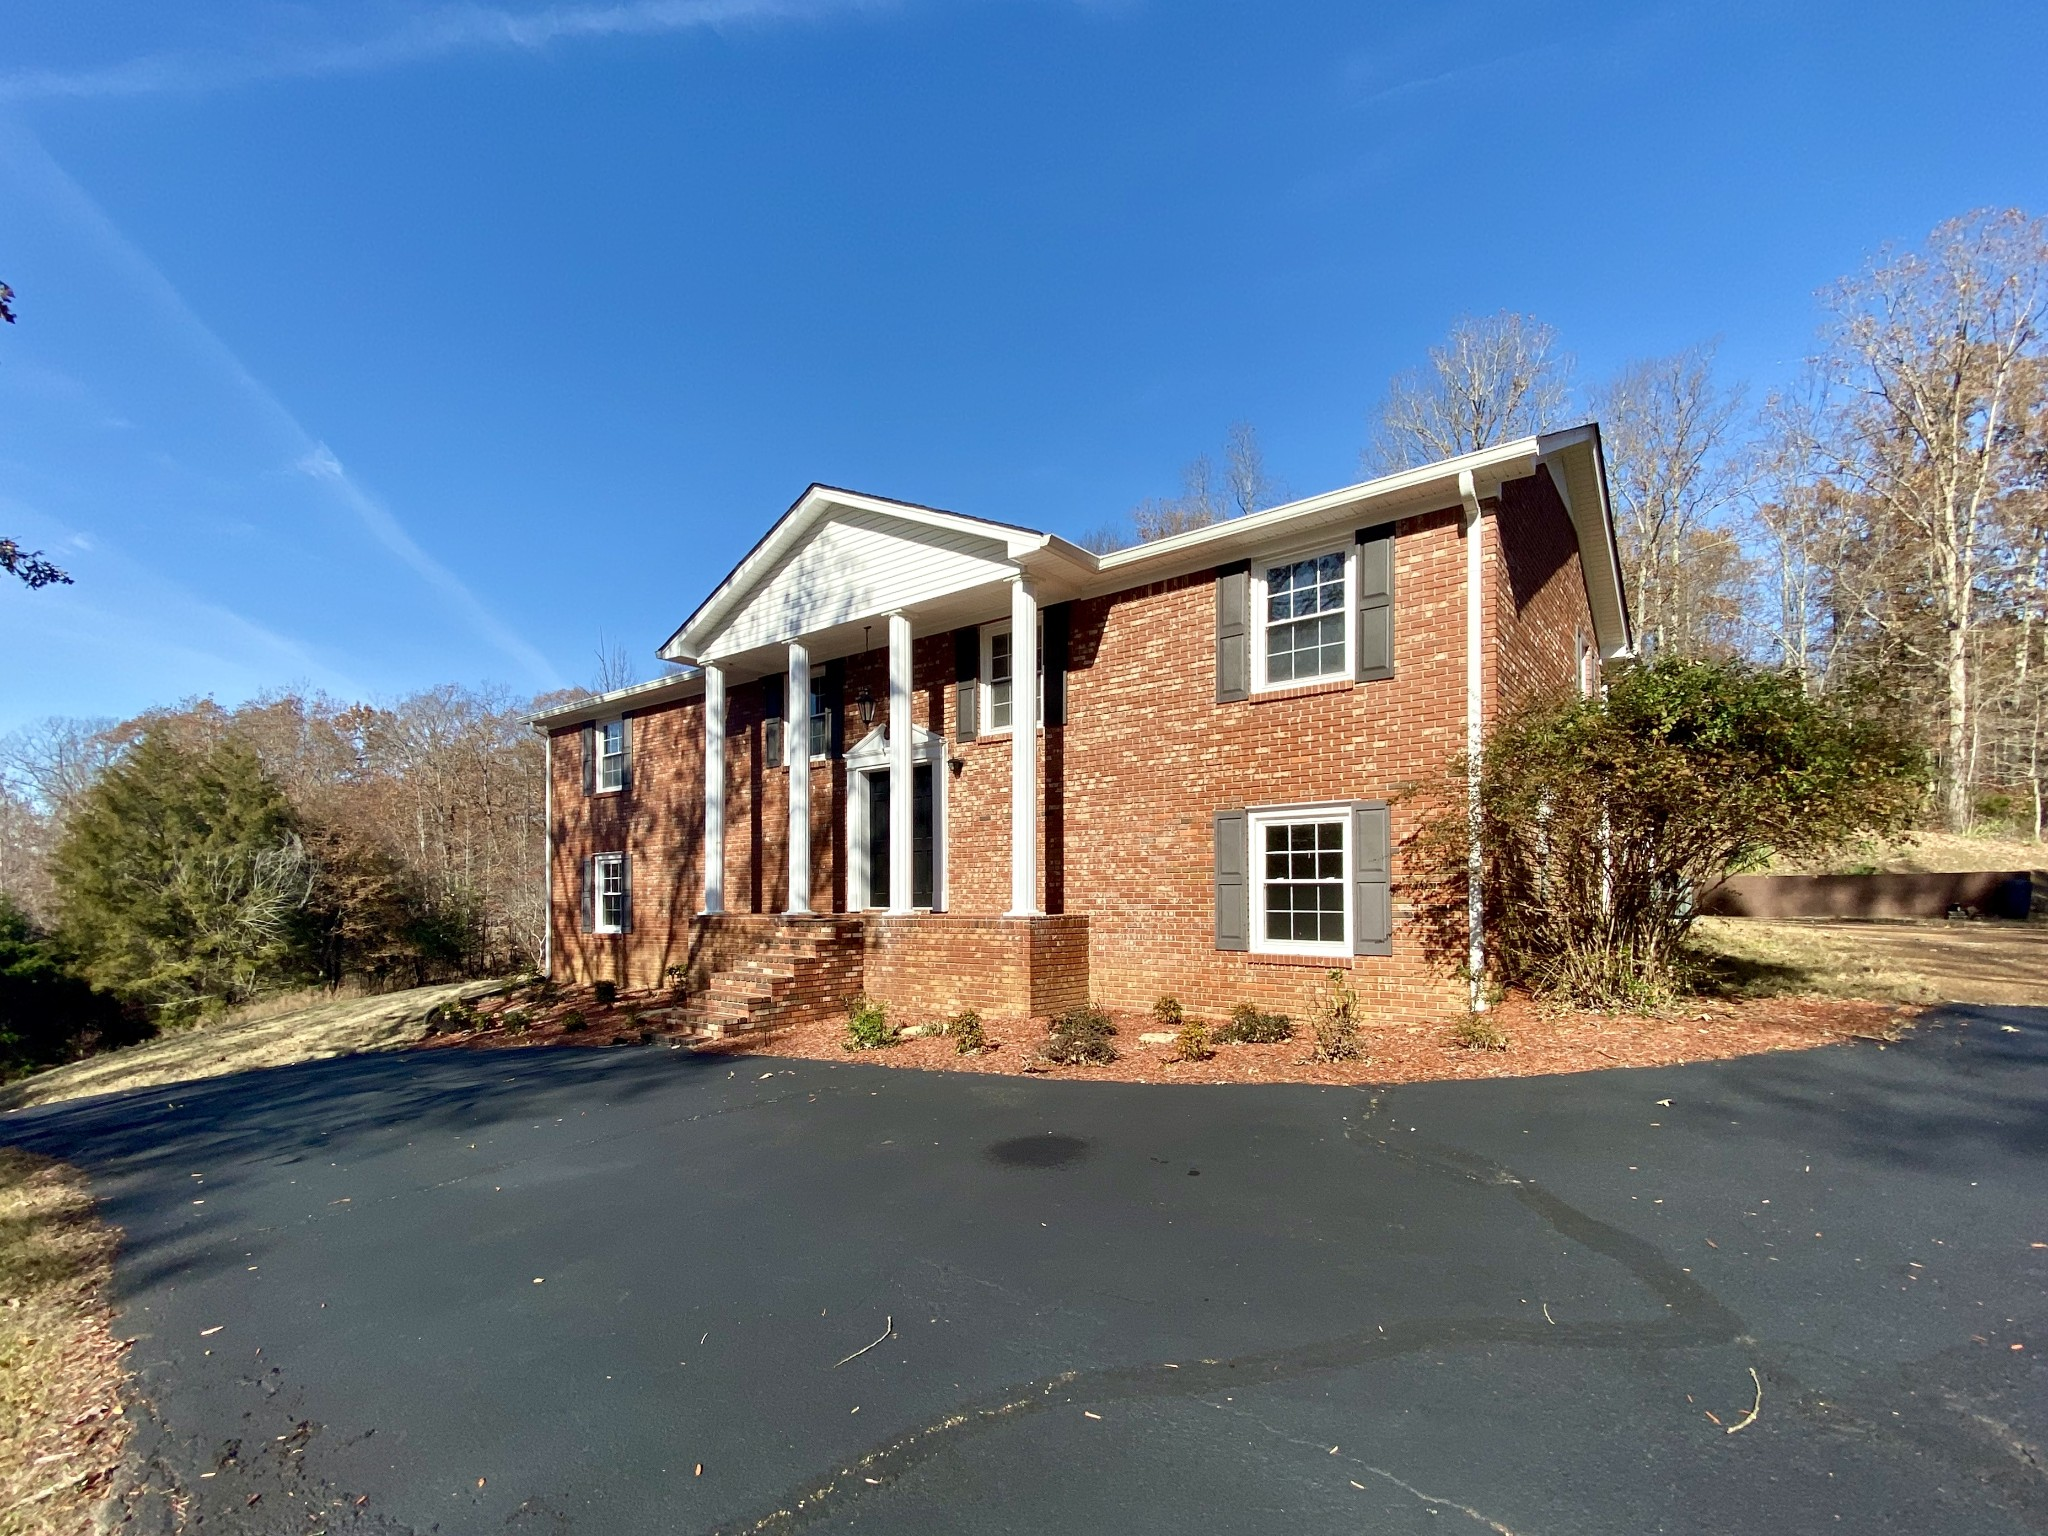 401 Rustling Oaks Dr, Waverly, TN 37185 - Waverly, TN real estate listing